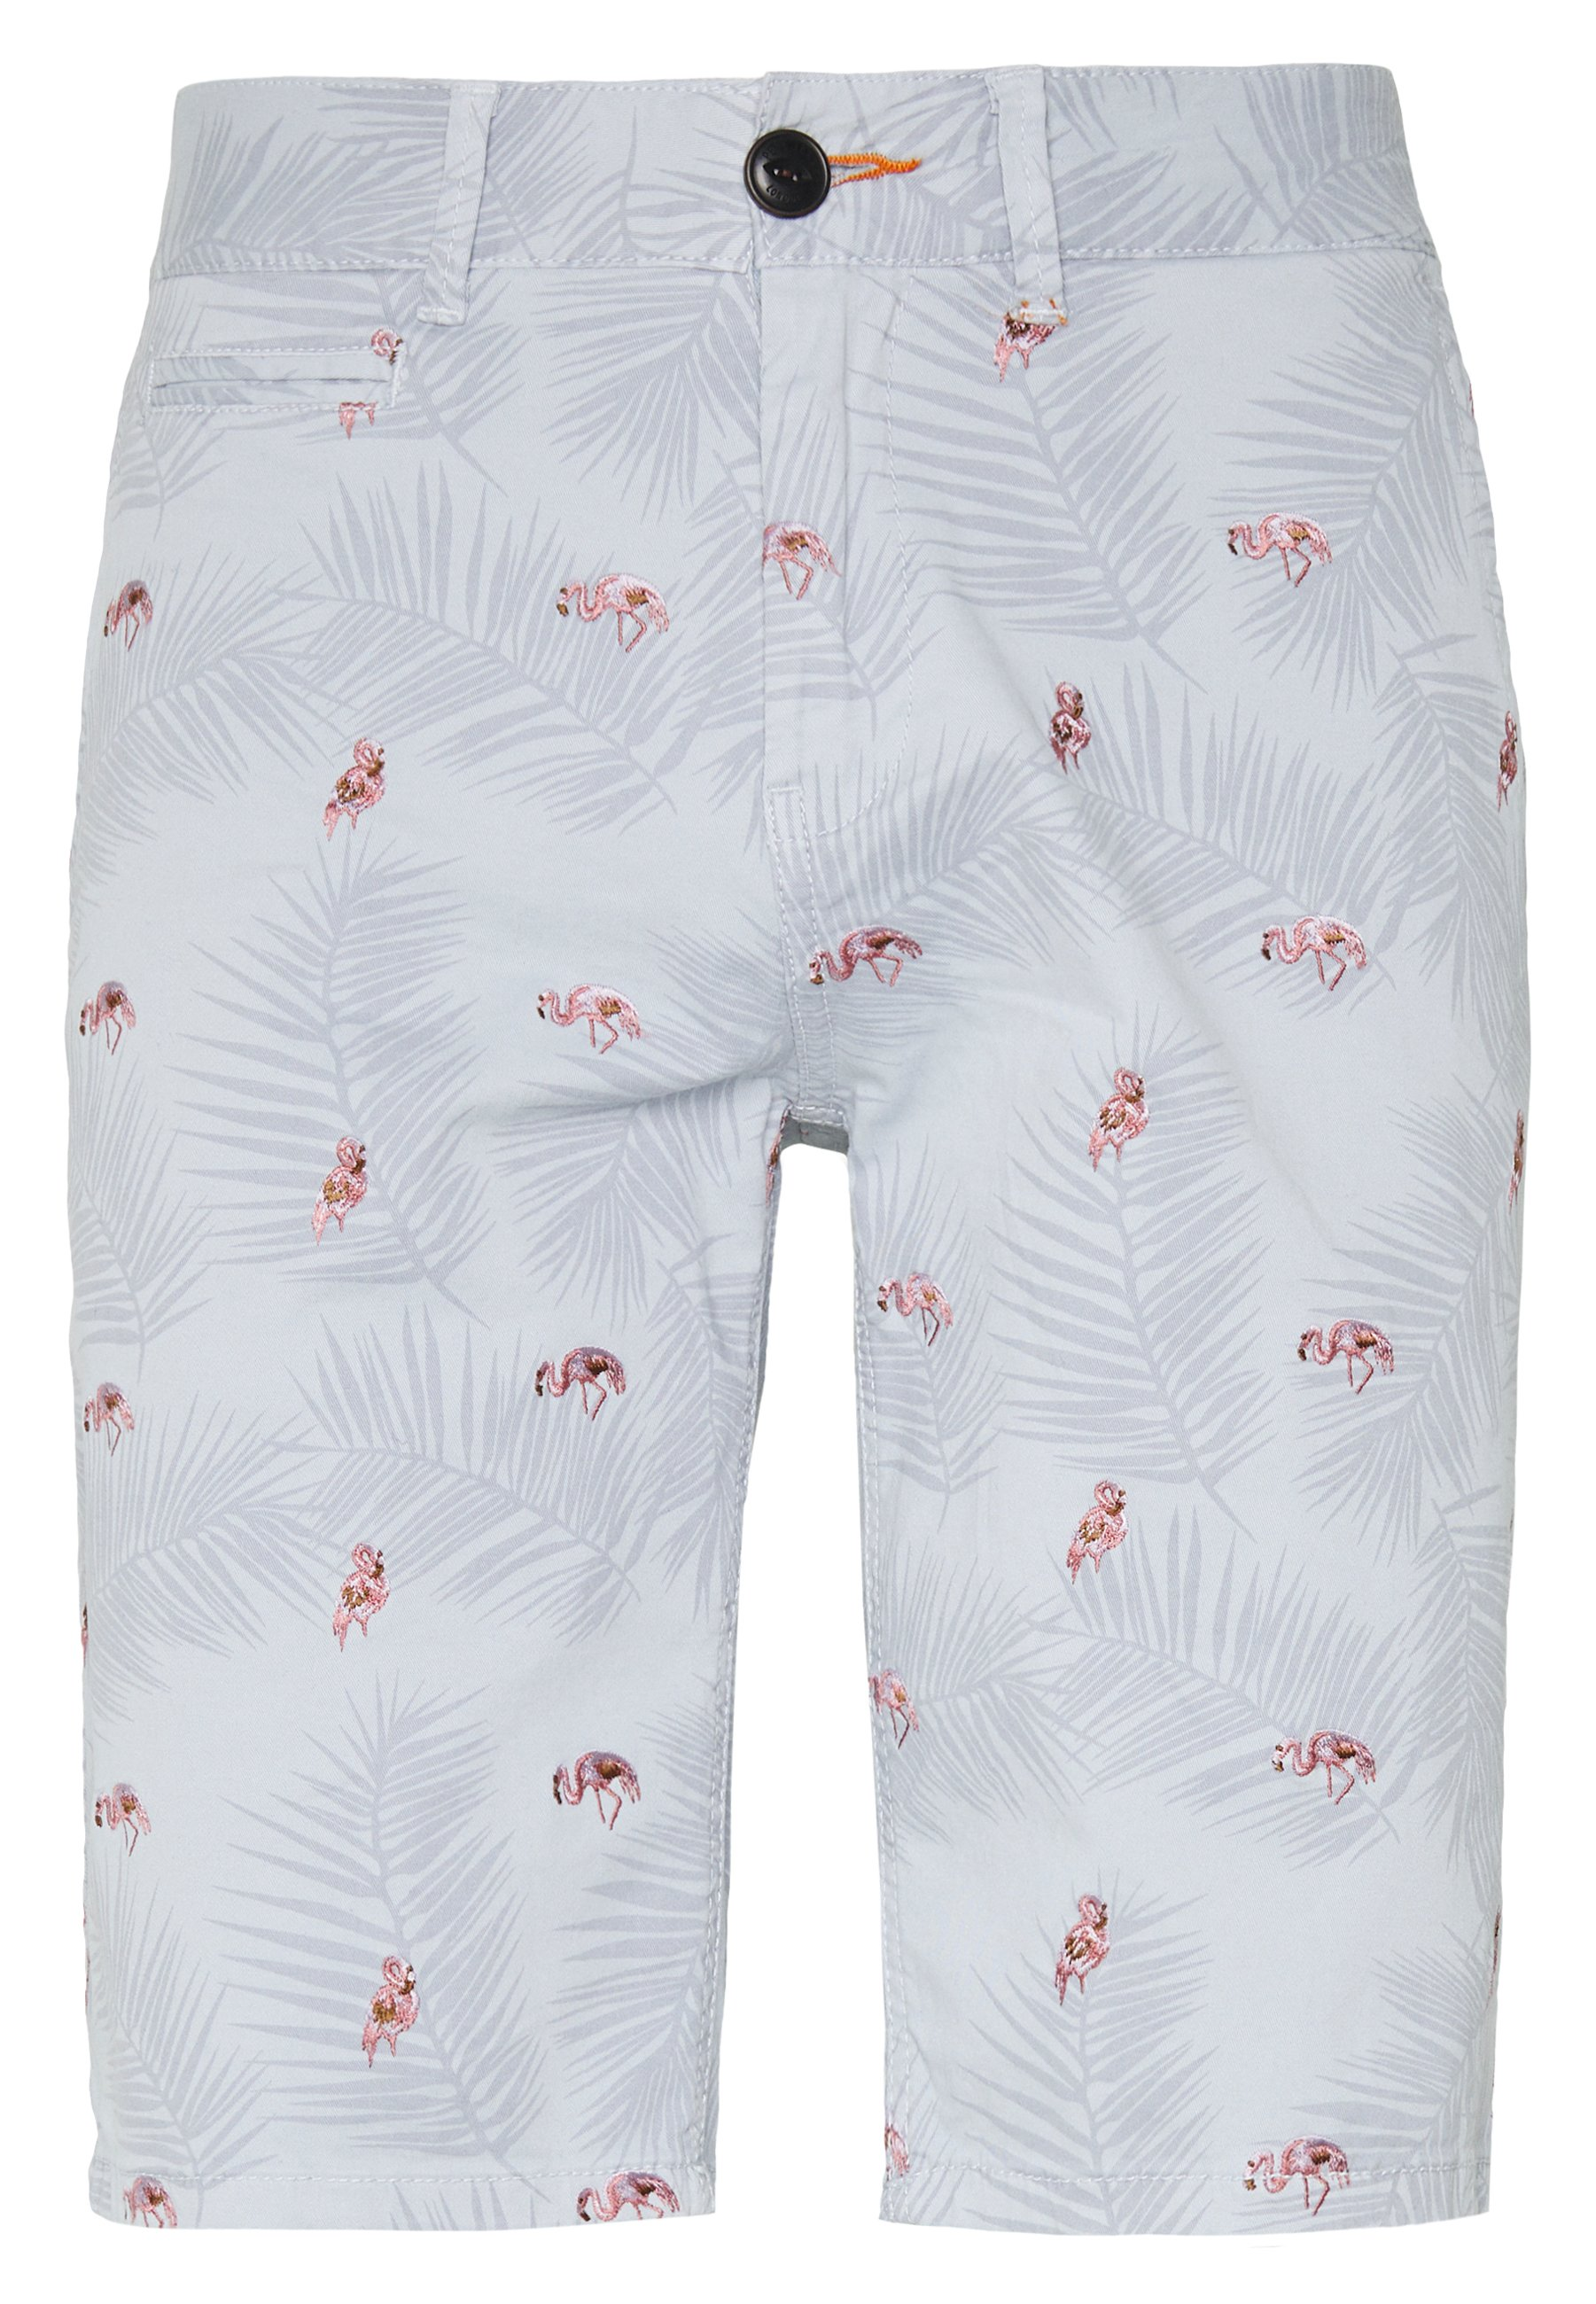 Pepe Jeans Blackburn Embro - Shorts Sky 8S9FS2A